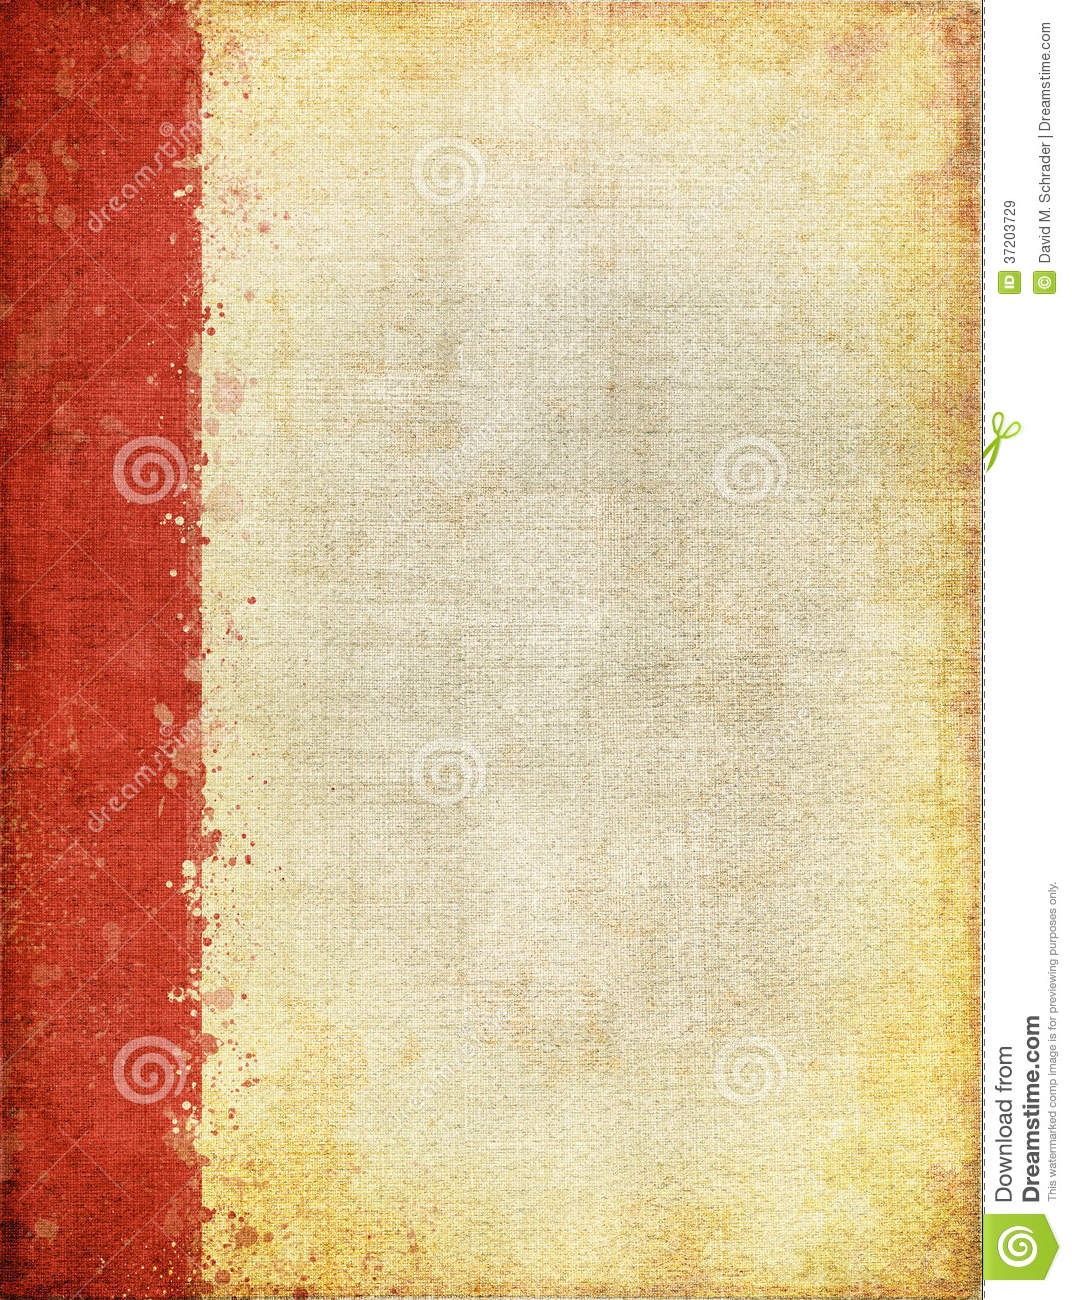 Cloth Book Cover Pattern : Red margin screen pattern royalty free stock images